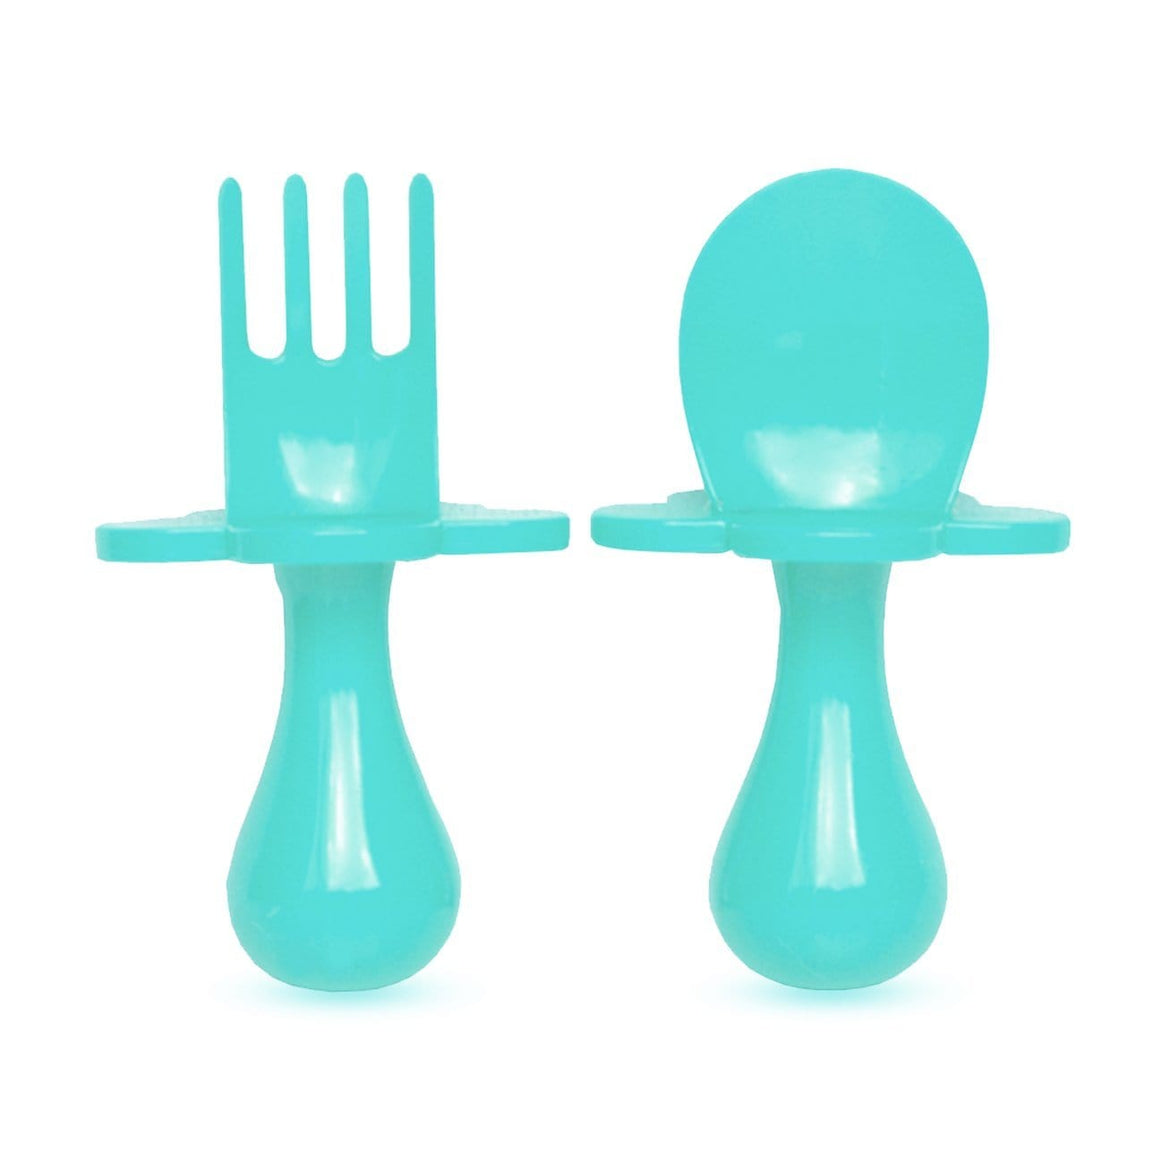 Grabease USA- Eating Utensils Set For Toddlers -Teal My Heart 美國Grabease幼兒學習雲朵餐具-湖水藍色